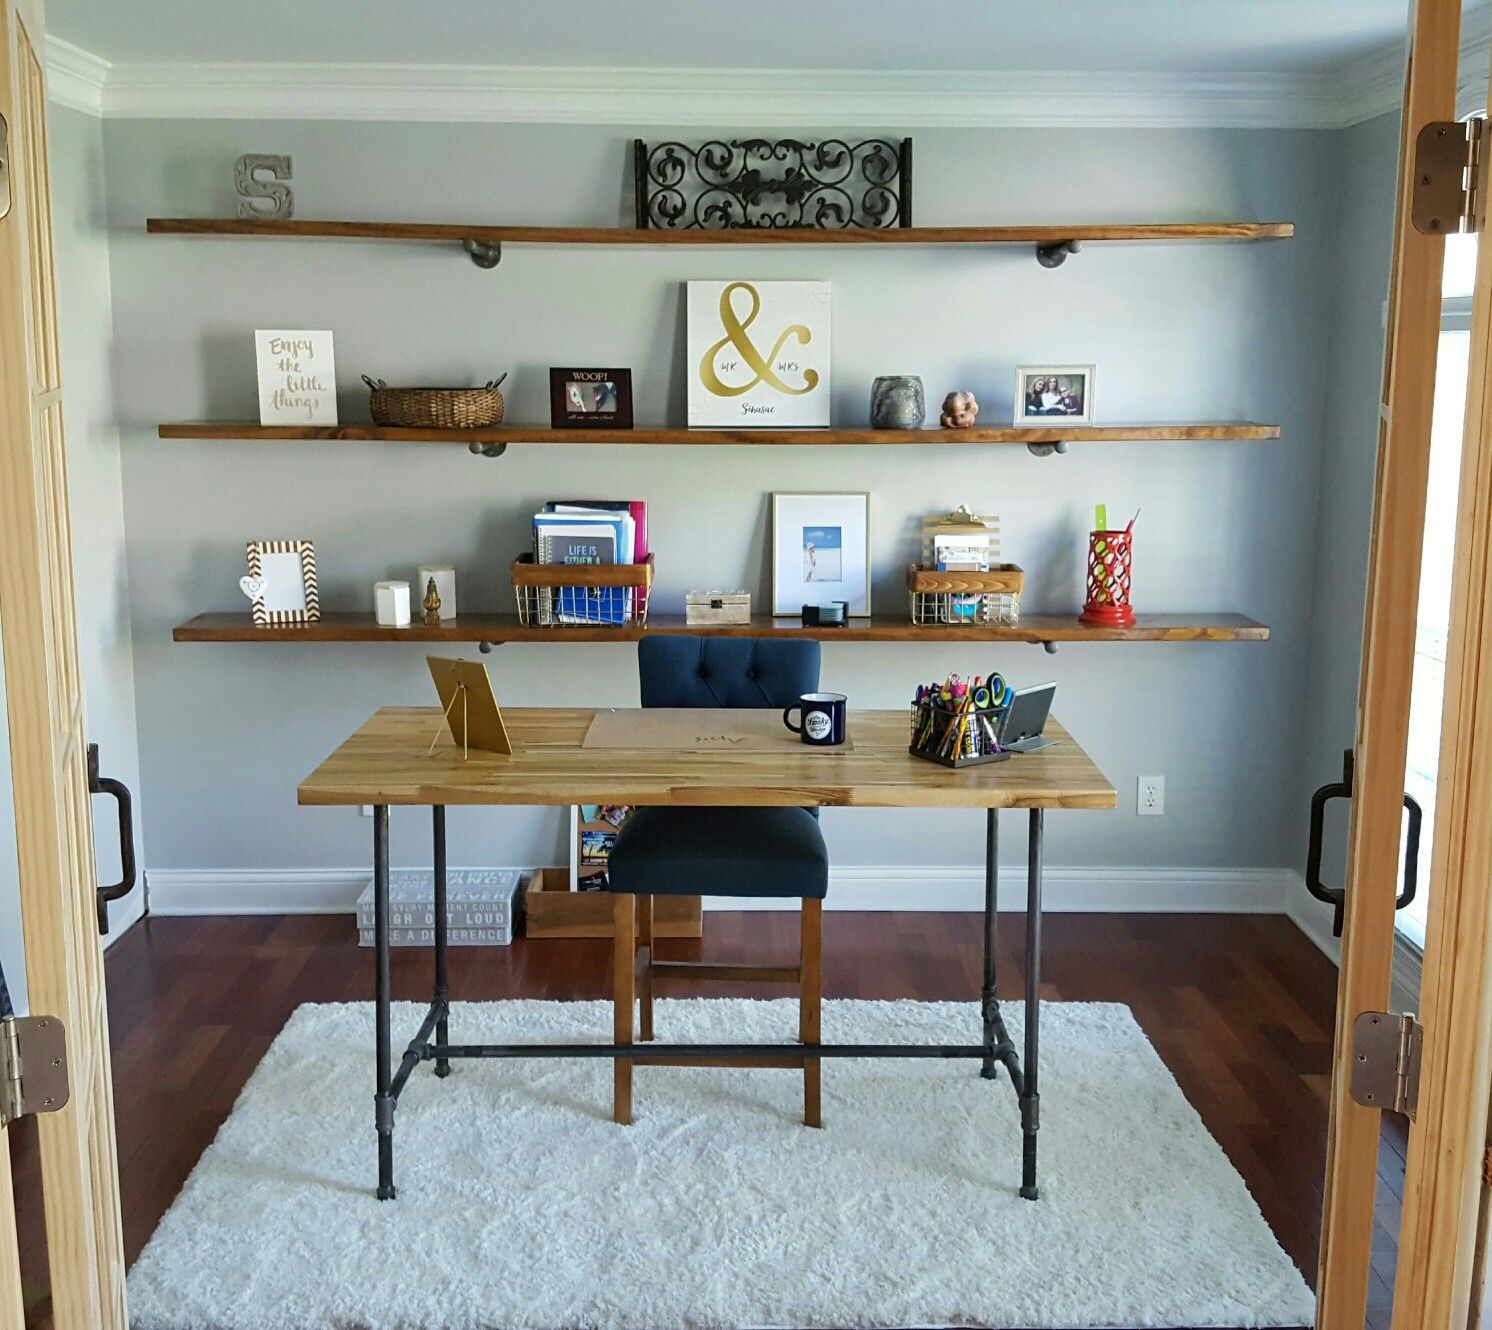 My Awesome Office My Hubby Did For Me! DIY Butcher Block Desk DIY Shelves #